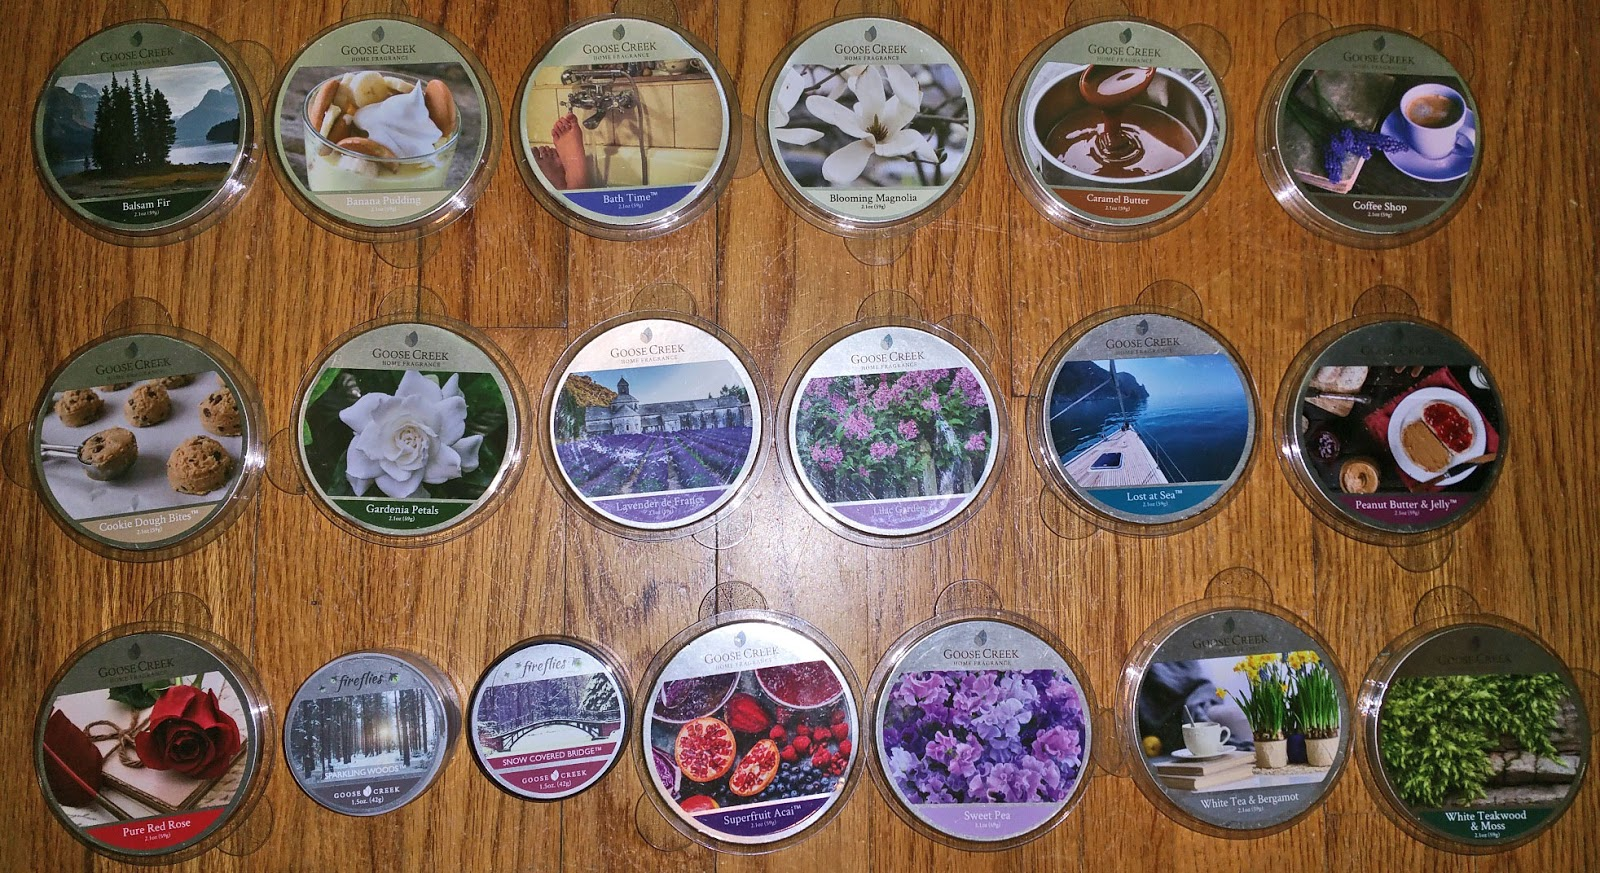 Scented Wax Melt Reviews: Goose Creek Candle Scented Wax Melts ...